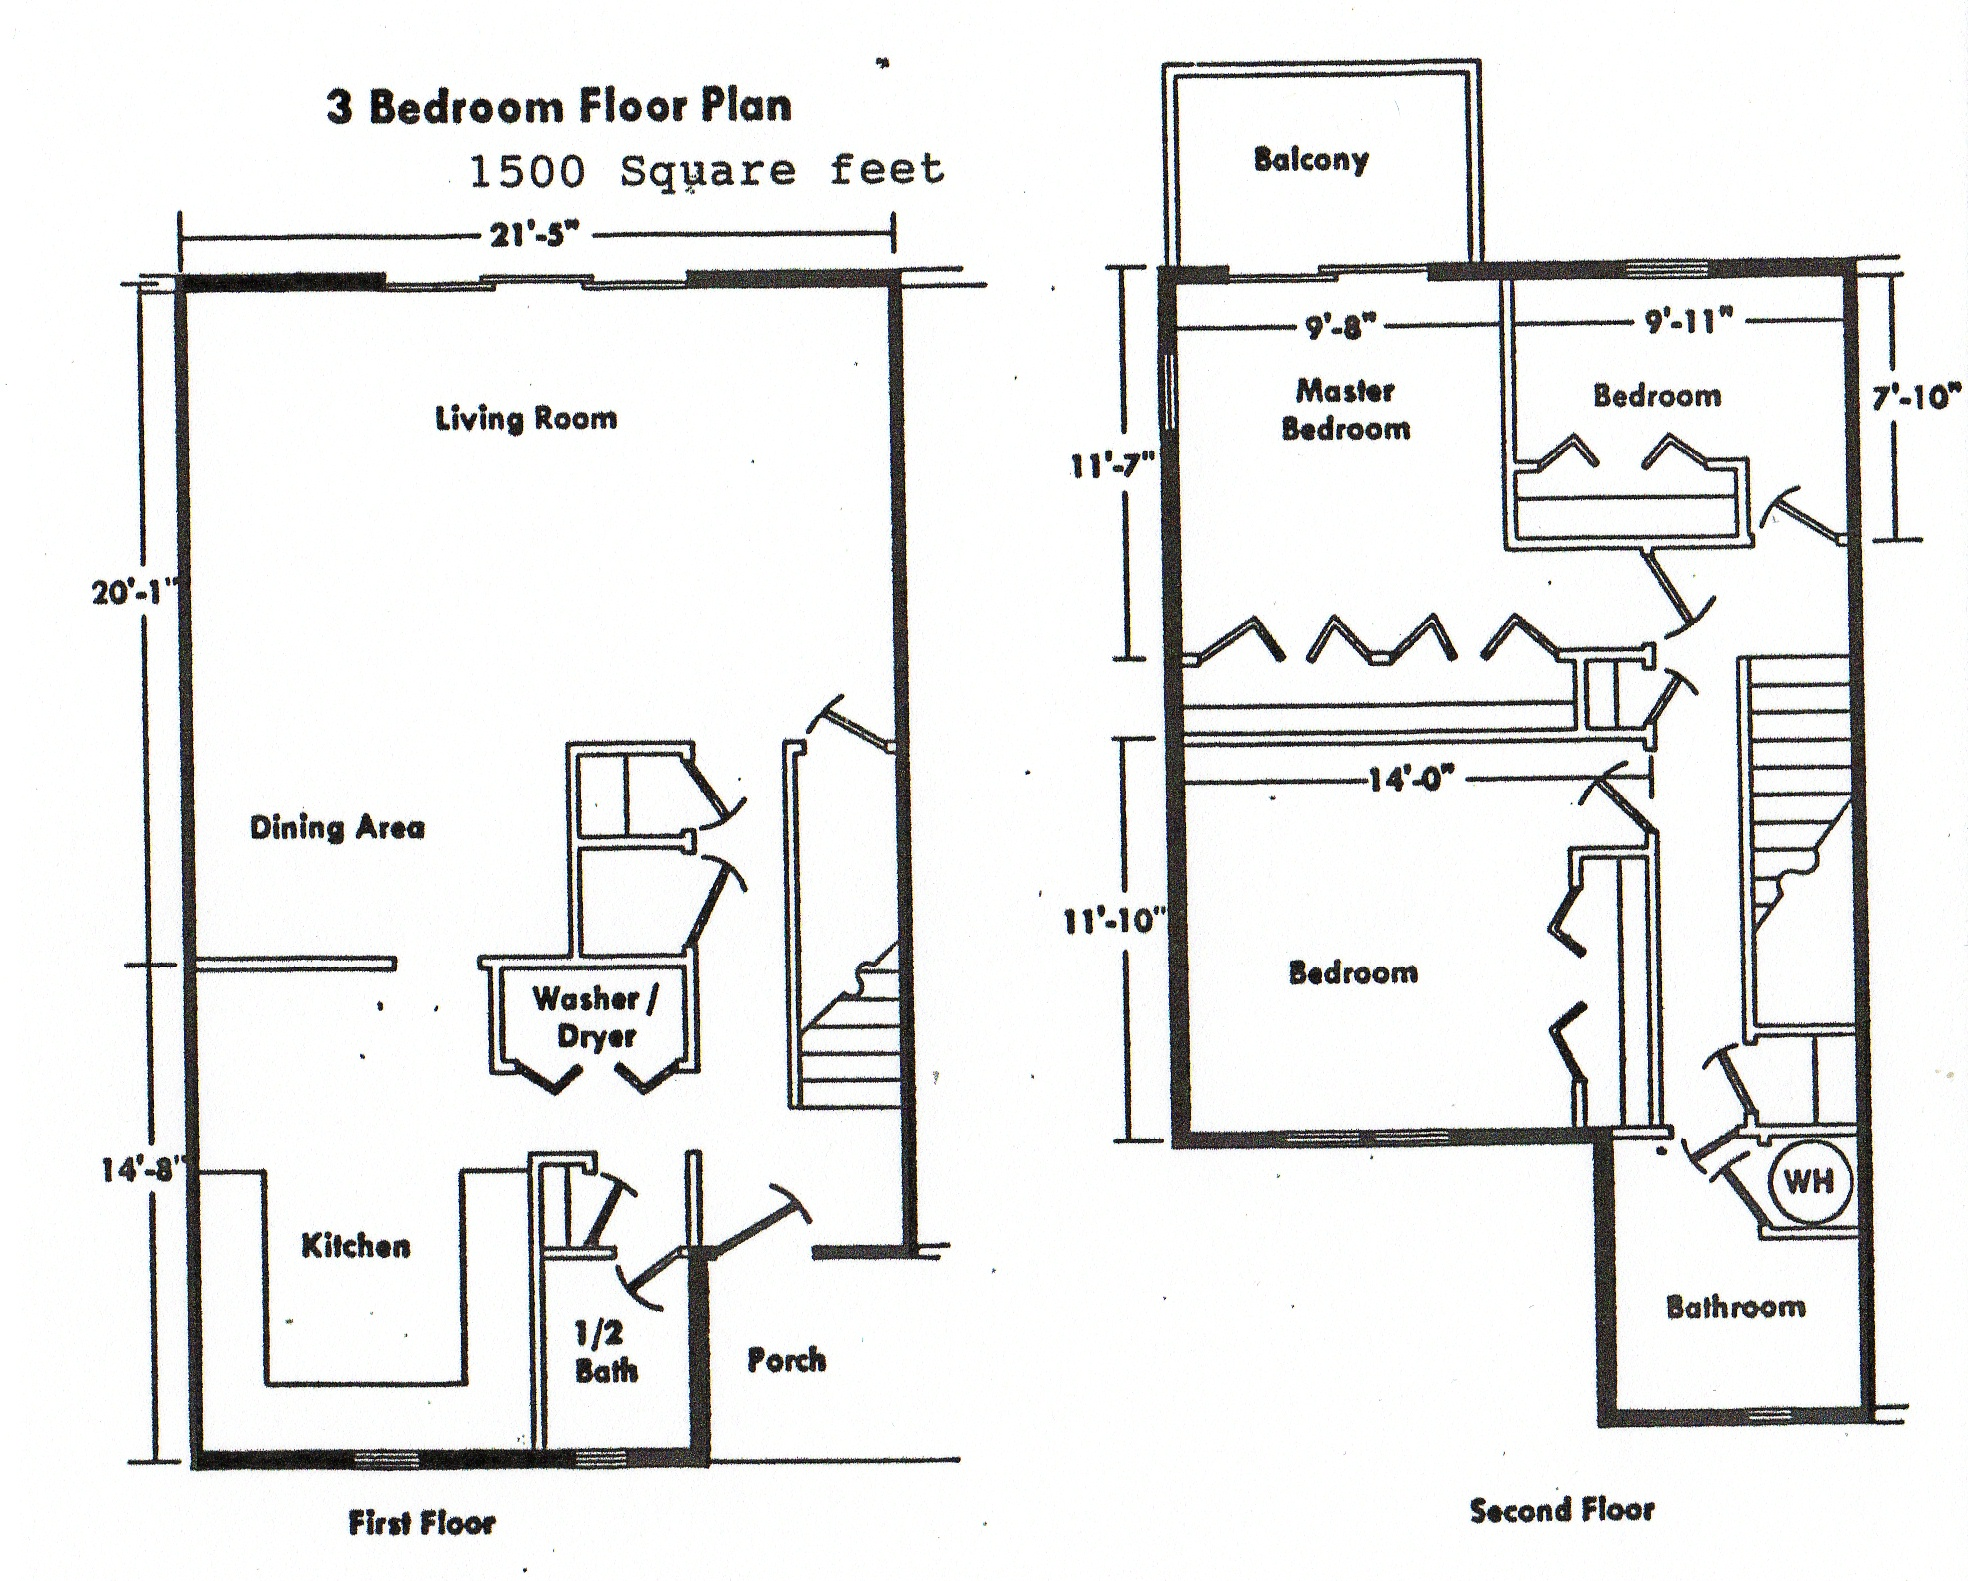 Home ideas for 3 br 2 bath floor plans